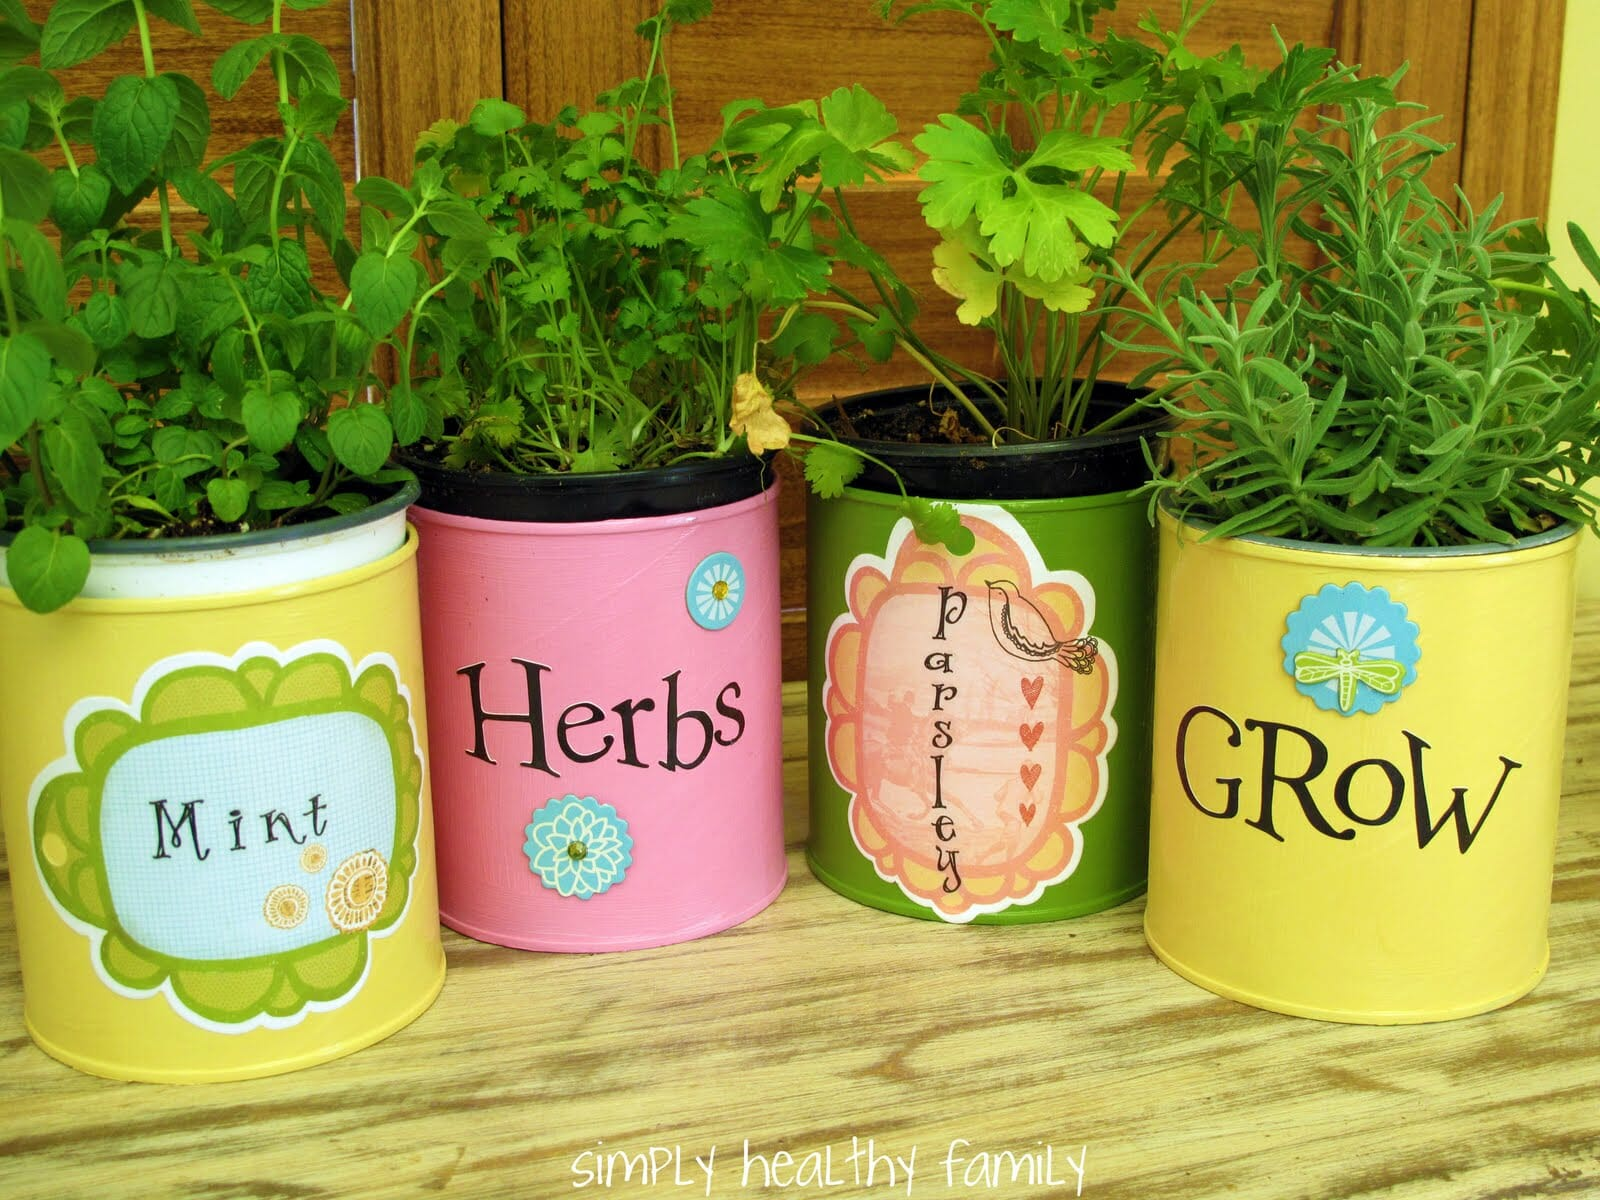 Tin can herb container gardens make easy, economical gifts | The Micro Gardener